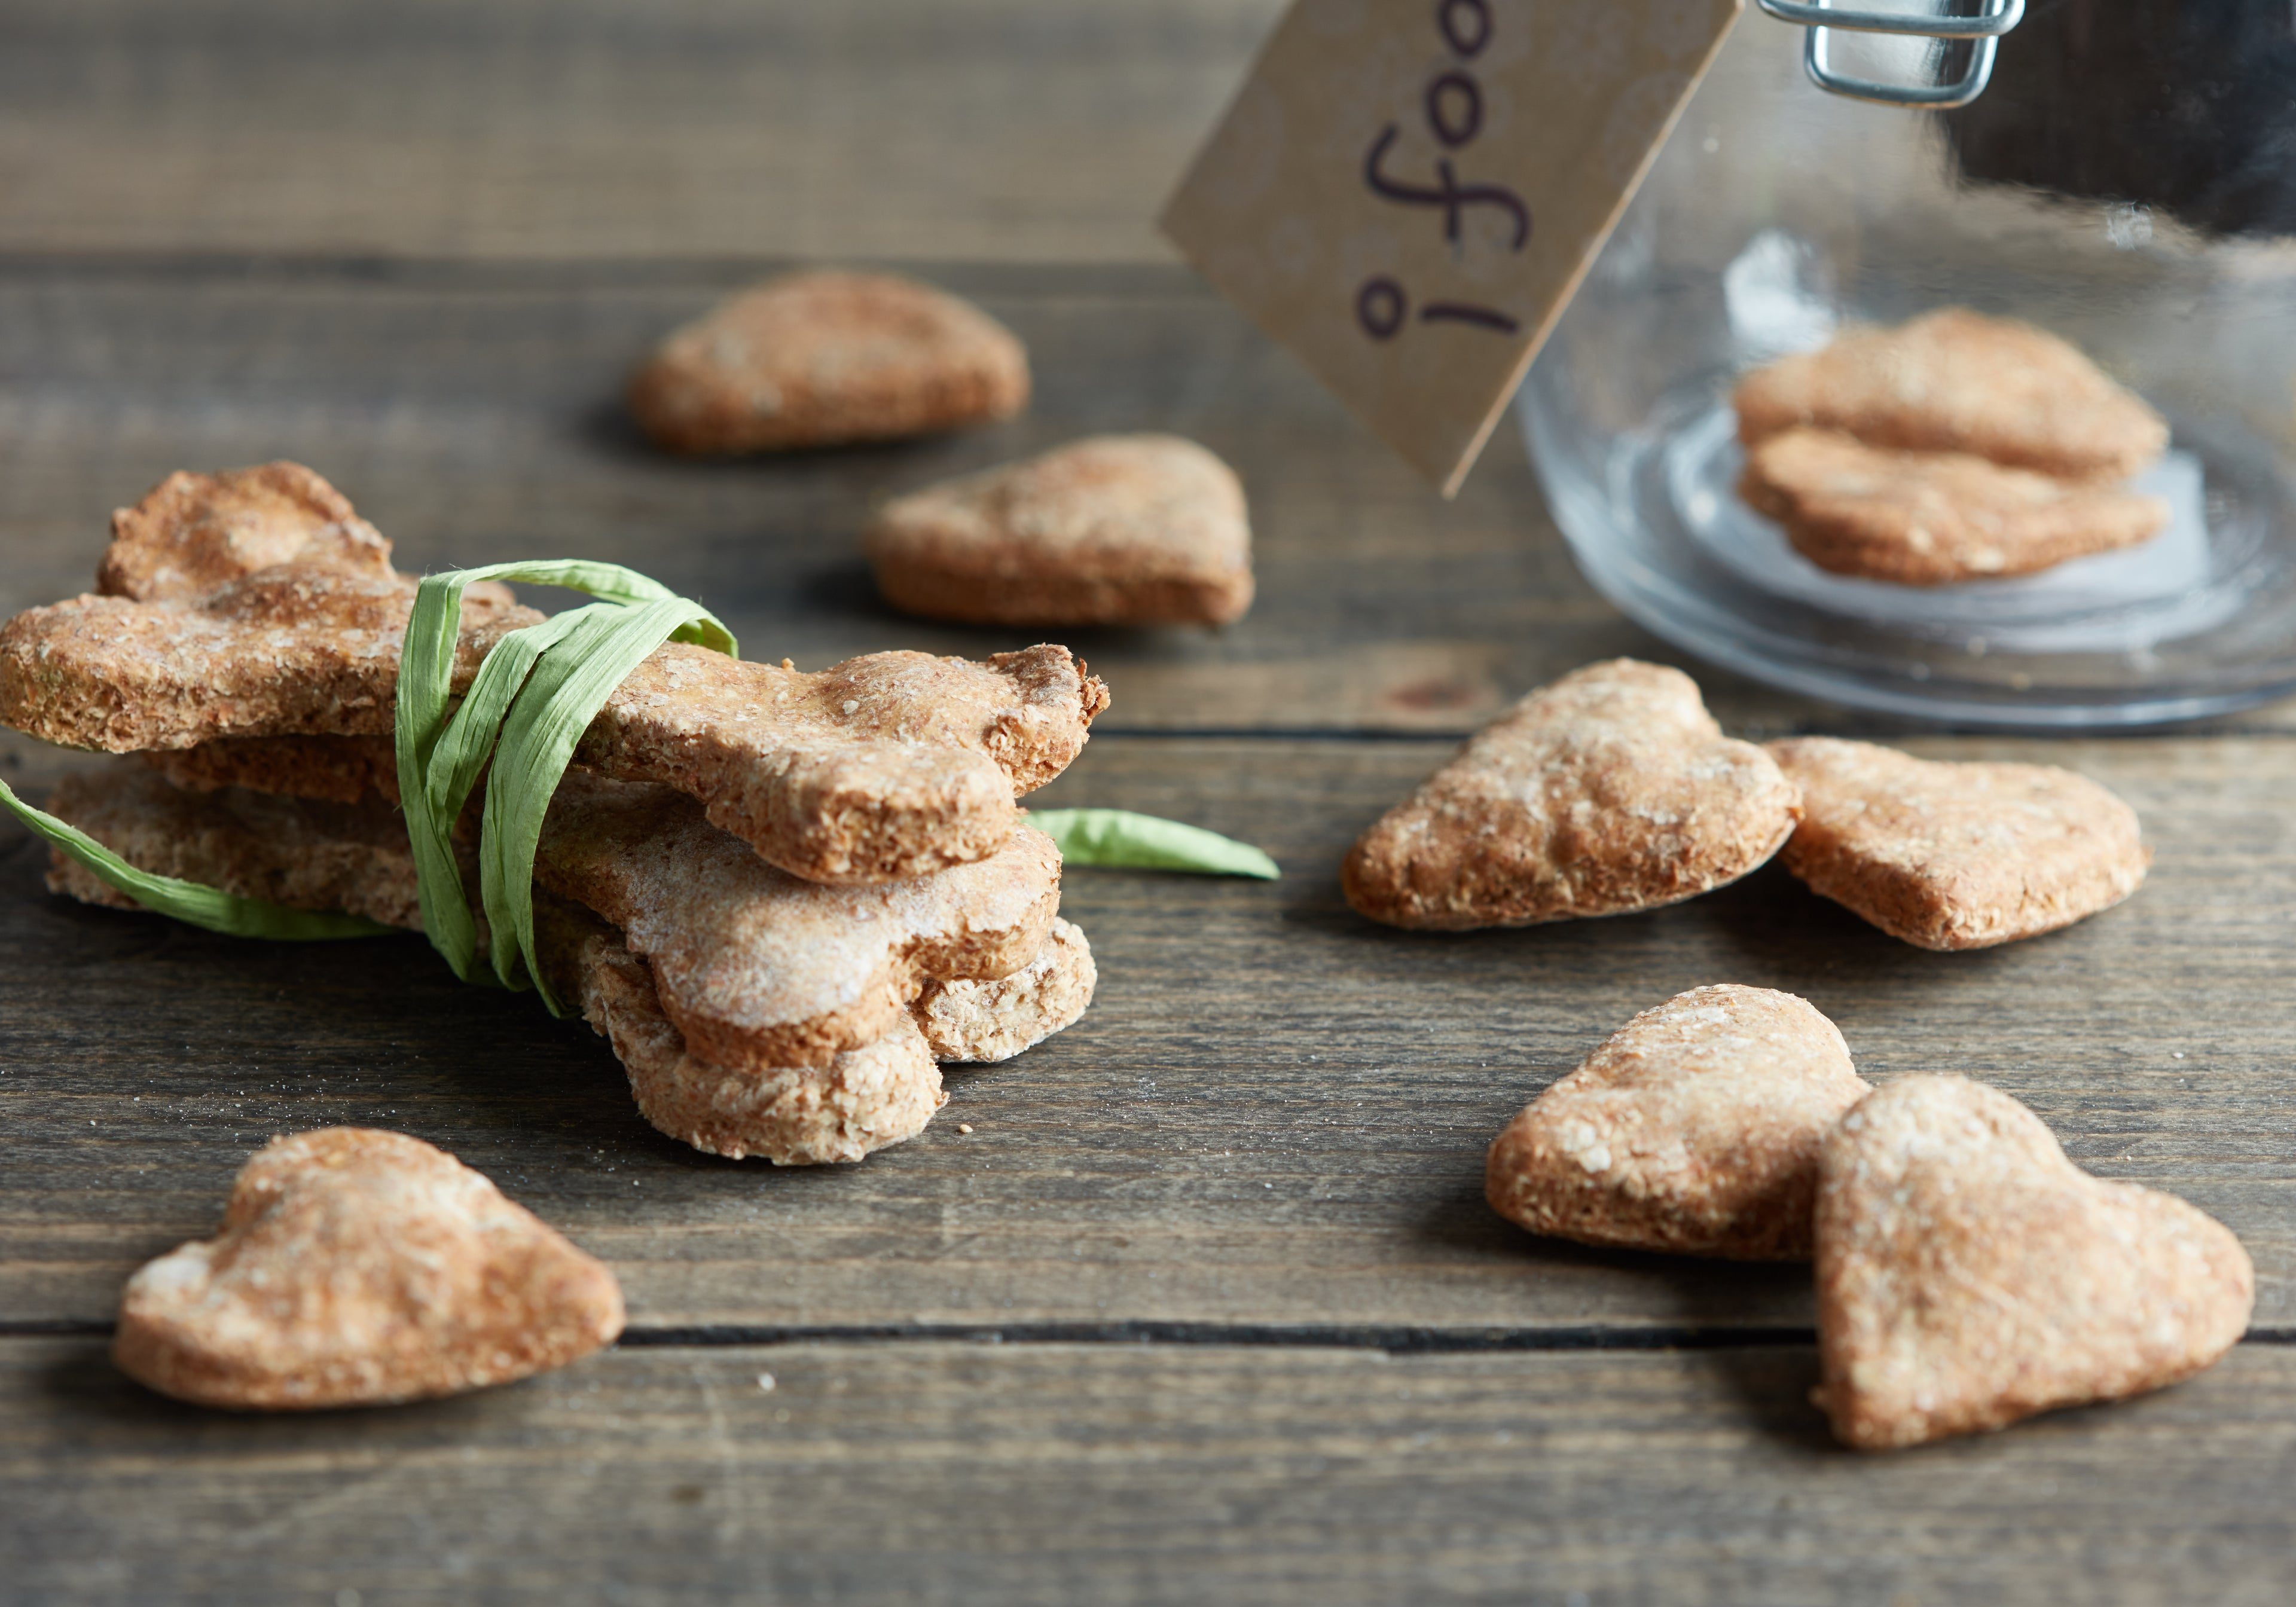 Dog biscuits tied up with ribbon and biscuits scattered around with jar in background